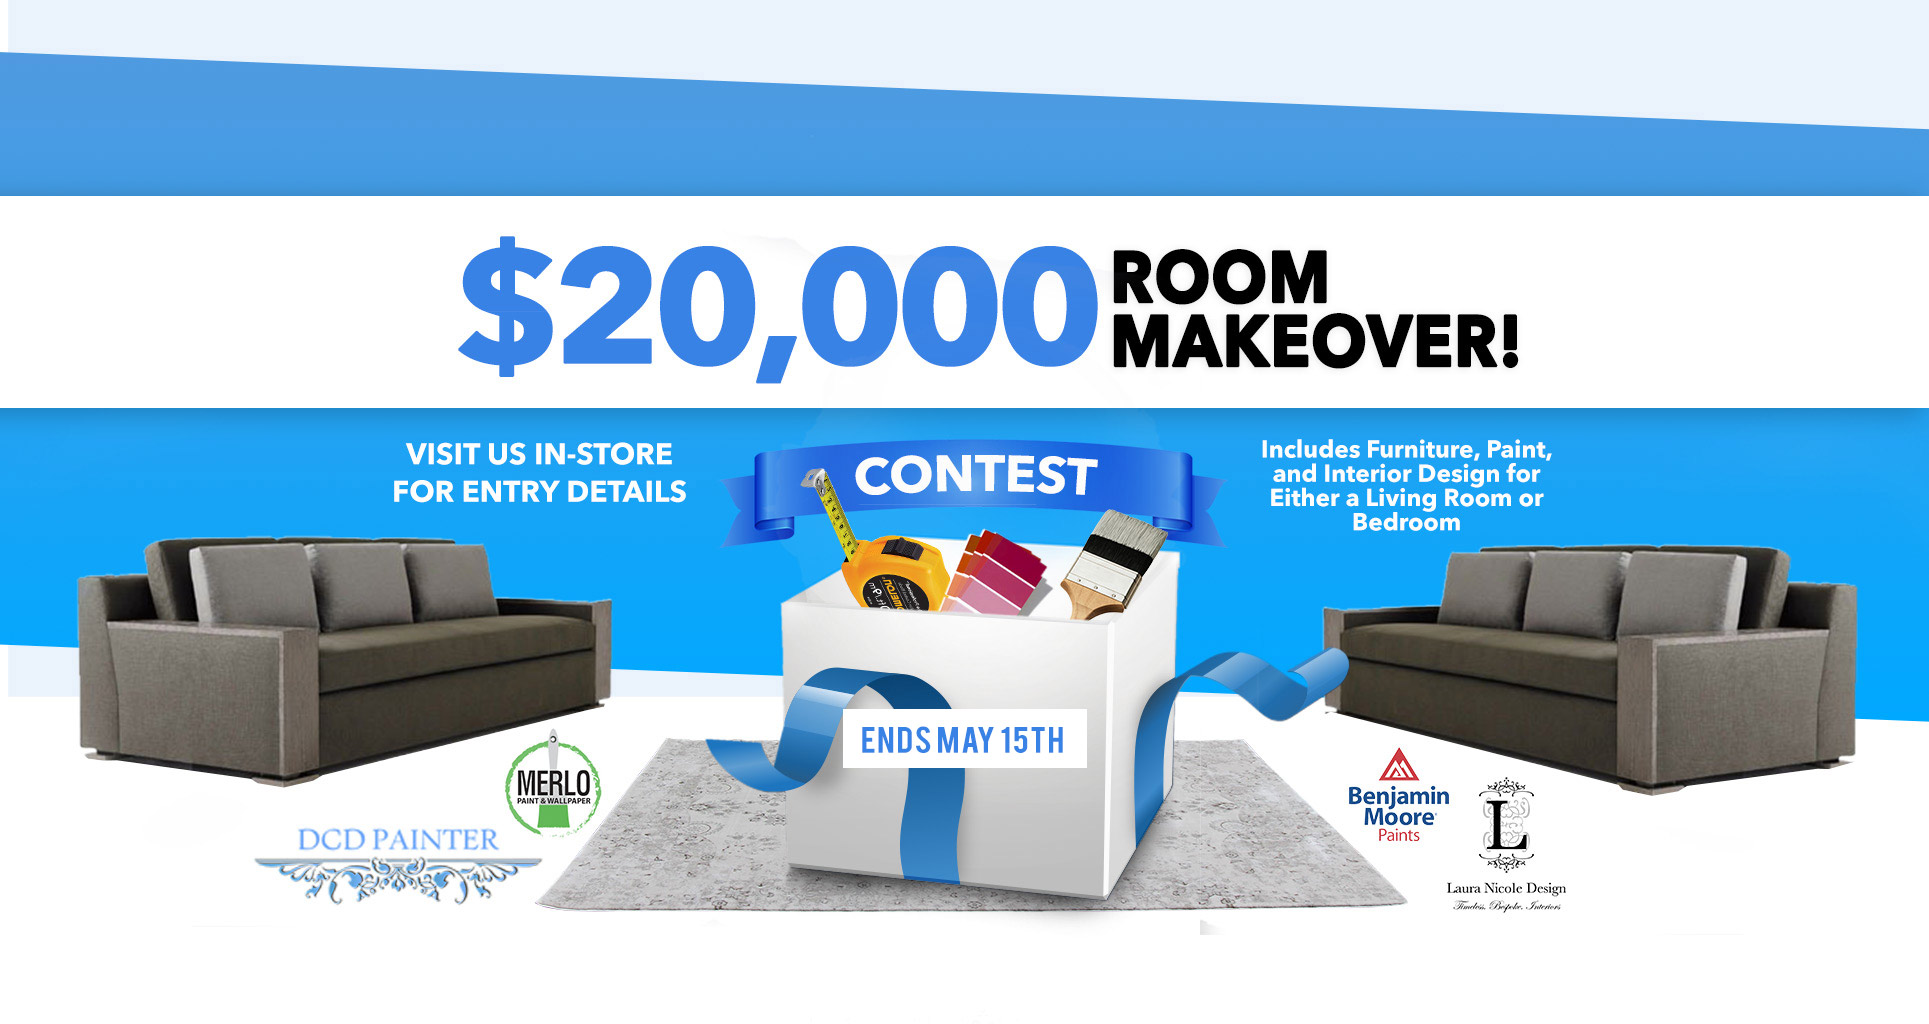 Coulters Room Contest Windsor Furniture April 2018 3 Home